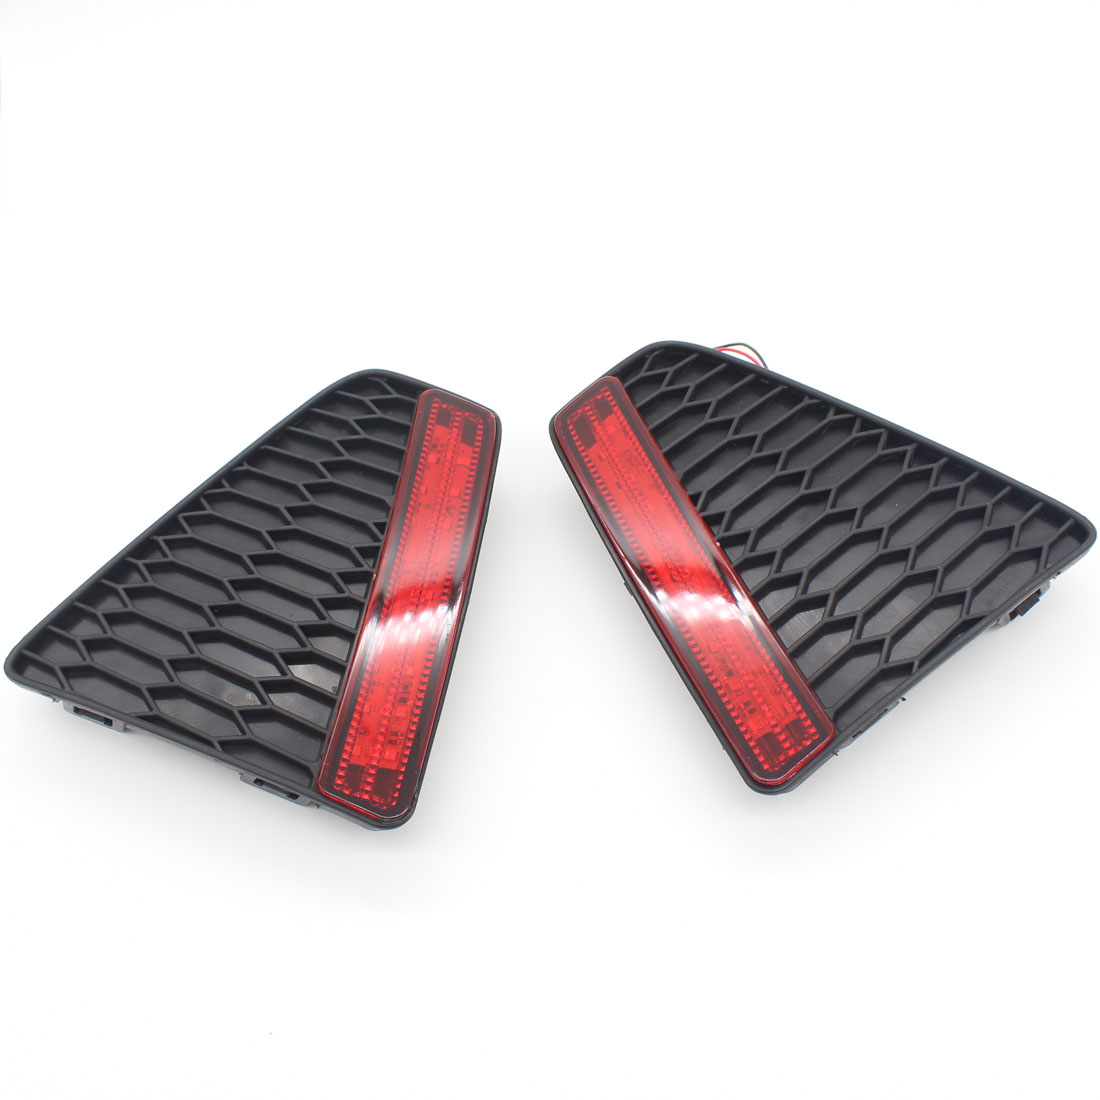 Dongzhen Backup Tail Rear Bumper Lamp LED Reflector stop Brake light fog lamp Fit For Honda Fit 2014-2015 car styling dongzhen fit for nissan bluebird sylphy almera led red rear bumper reflectors light night running brake warning lights lamp